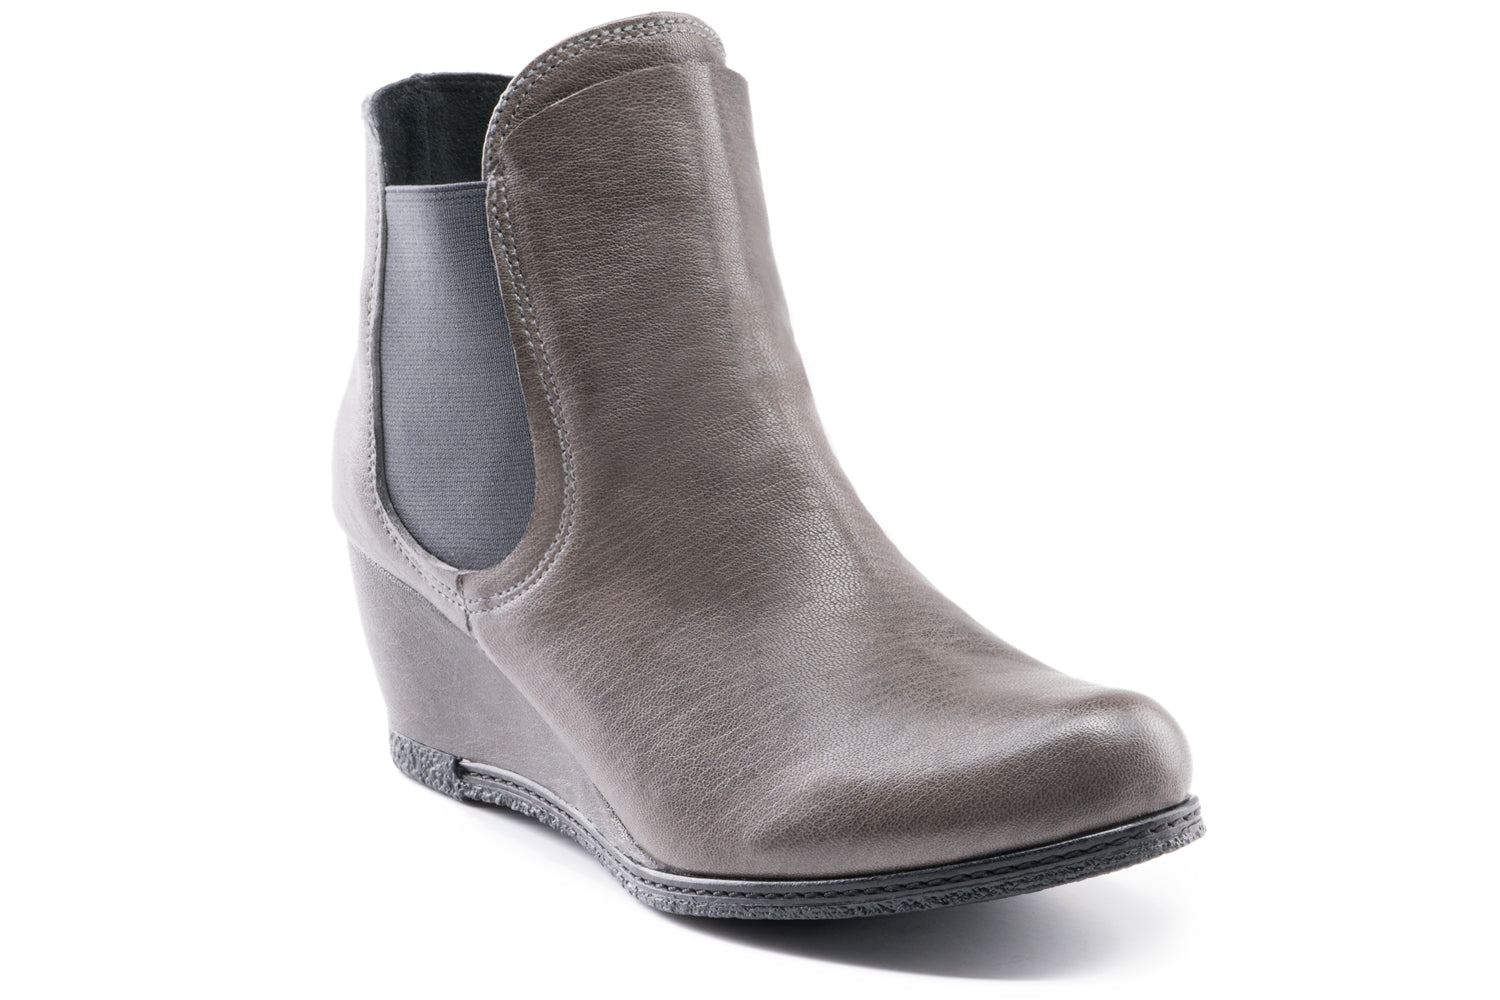 Mia Leather Wedge Chelsea boots - Charcoal Grey